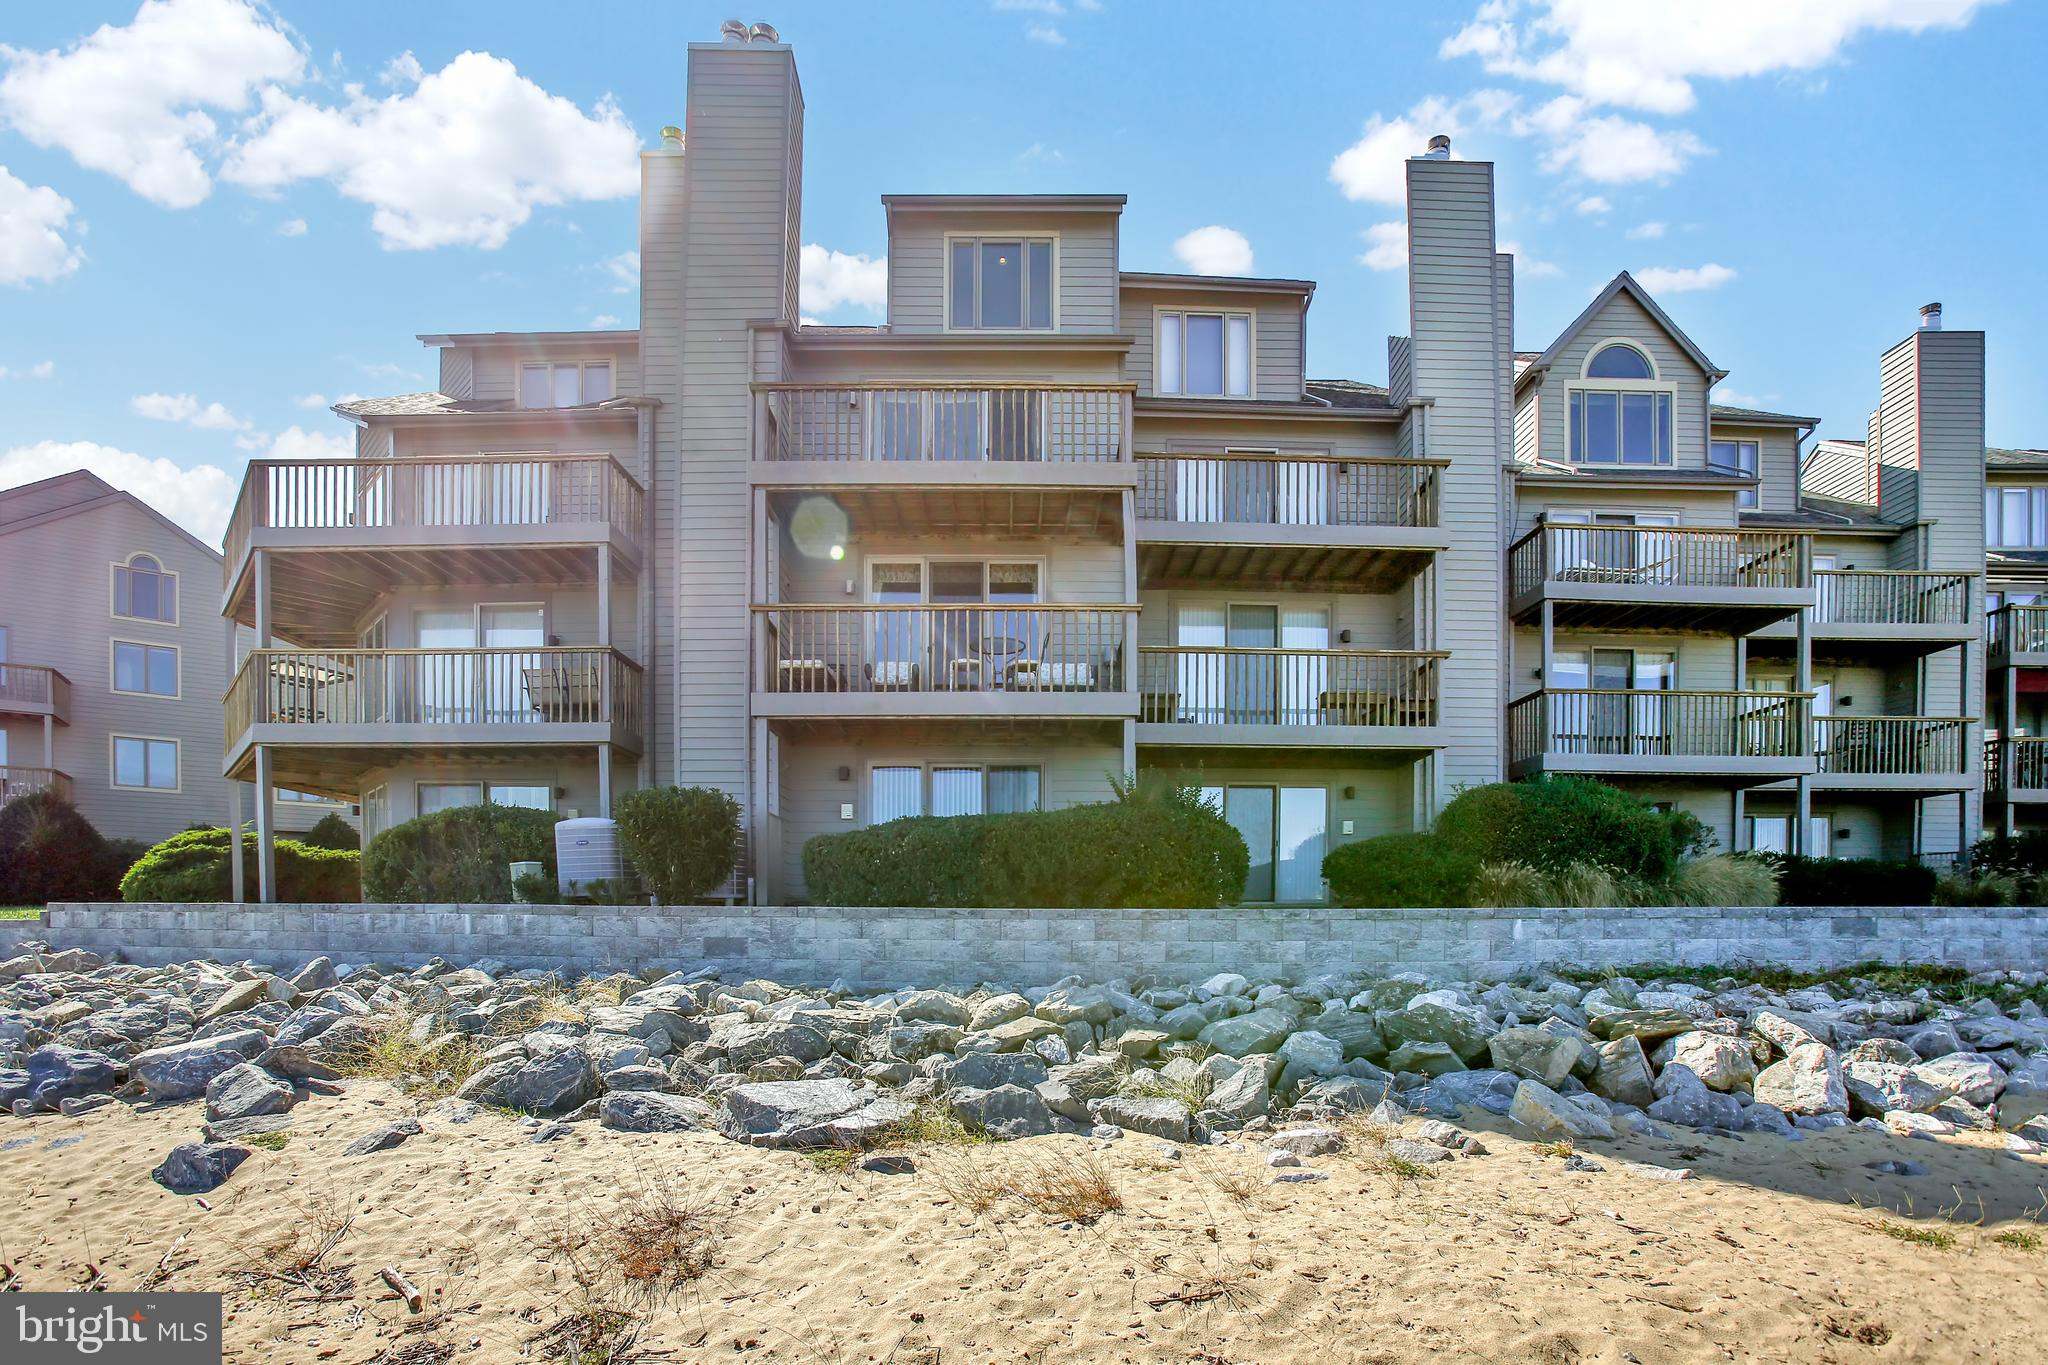 2187 CHESAPEAKE HARBOUR DRIVE, ANNAPOLIS, MD 21403